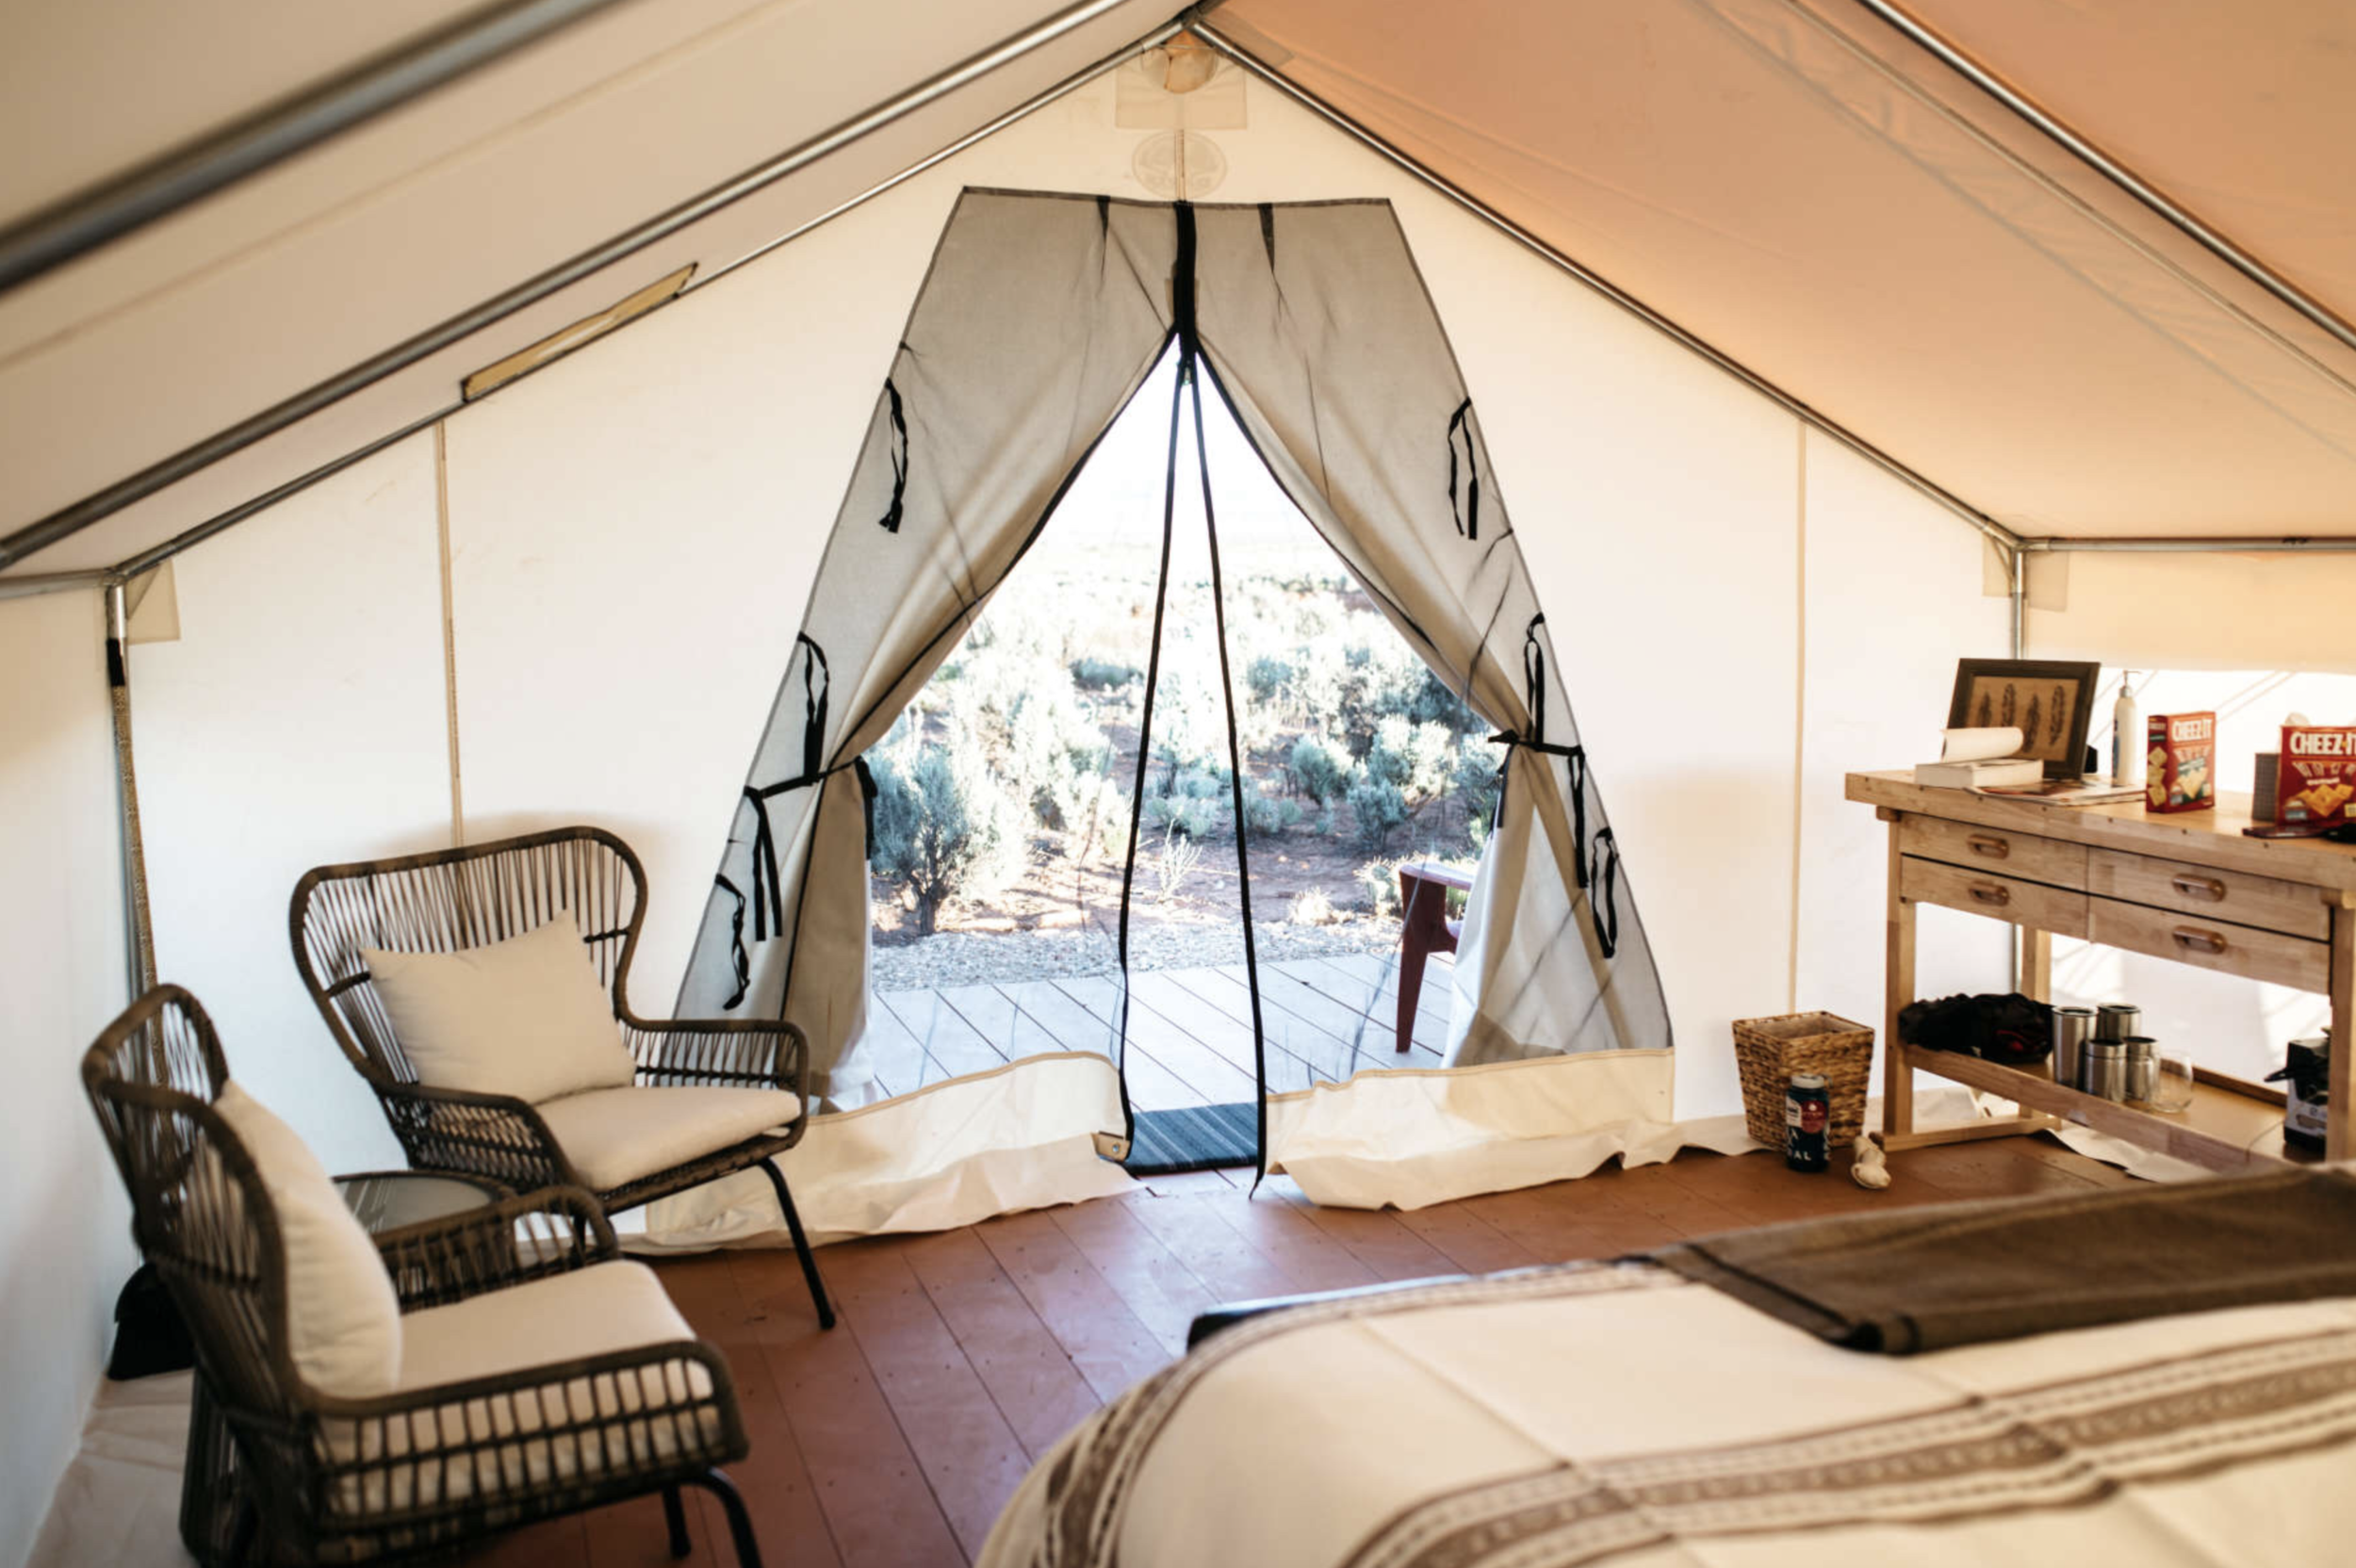 The Josey Wales Tent - Fall into a King size bed and wake to a southwest view facing the Chocolate Cliffs. Start the day in shade and end it in sun, all the while just 65 yards from washrooms.